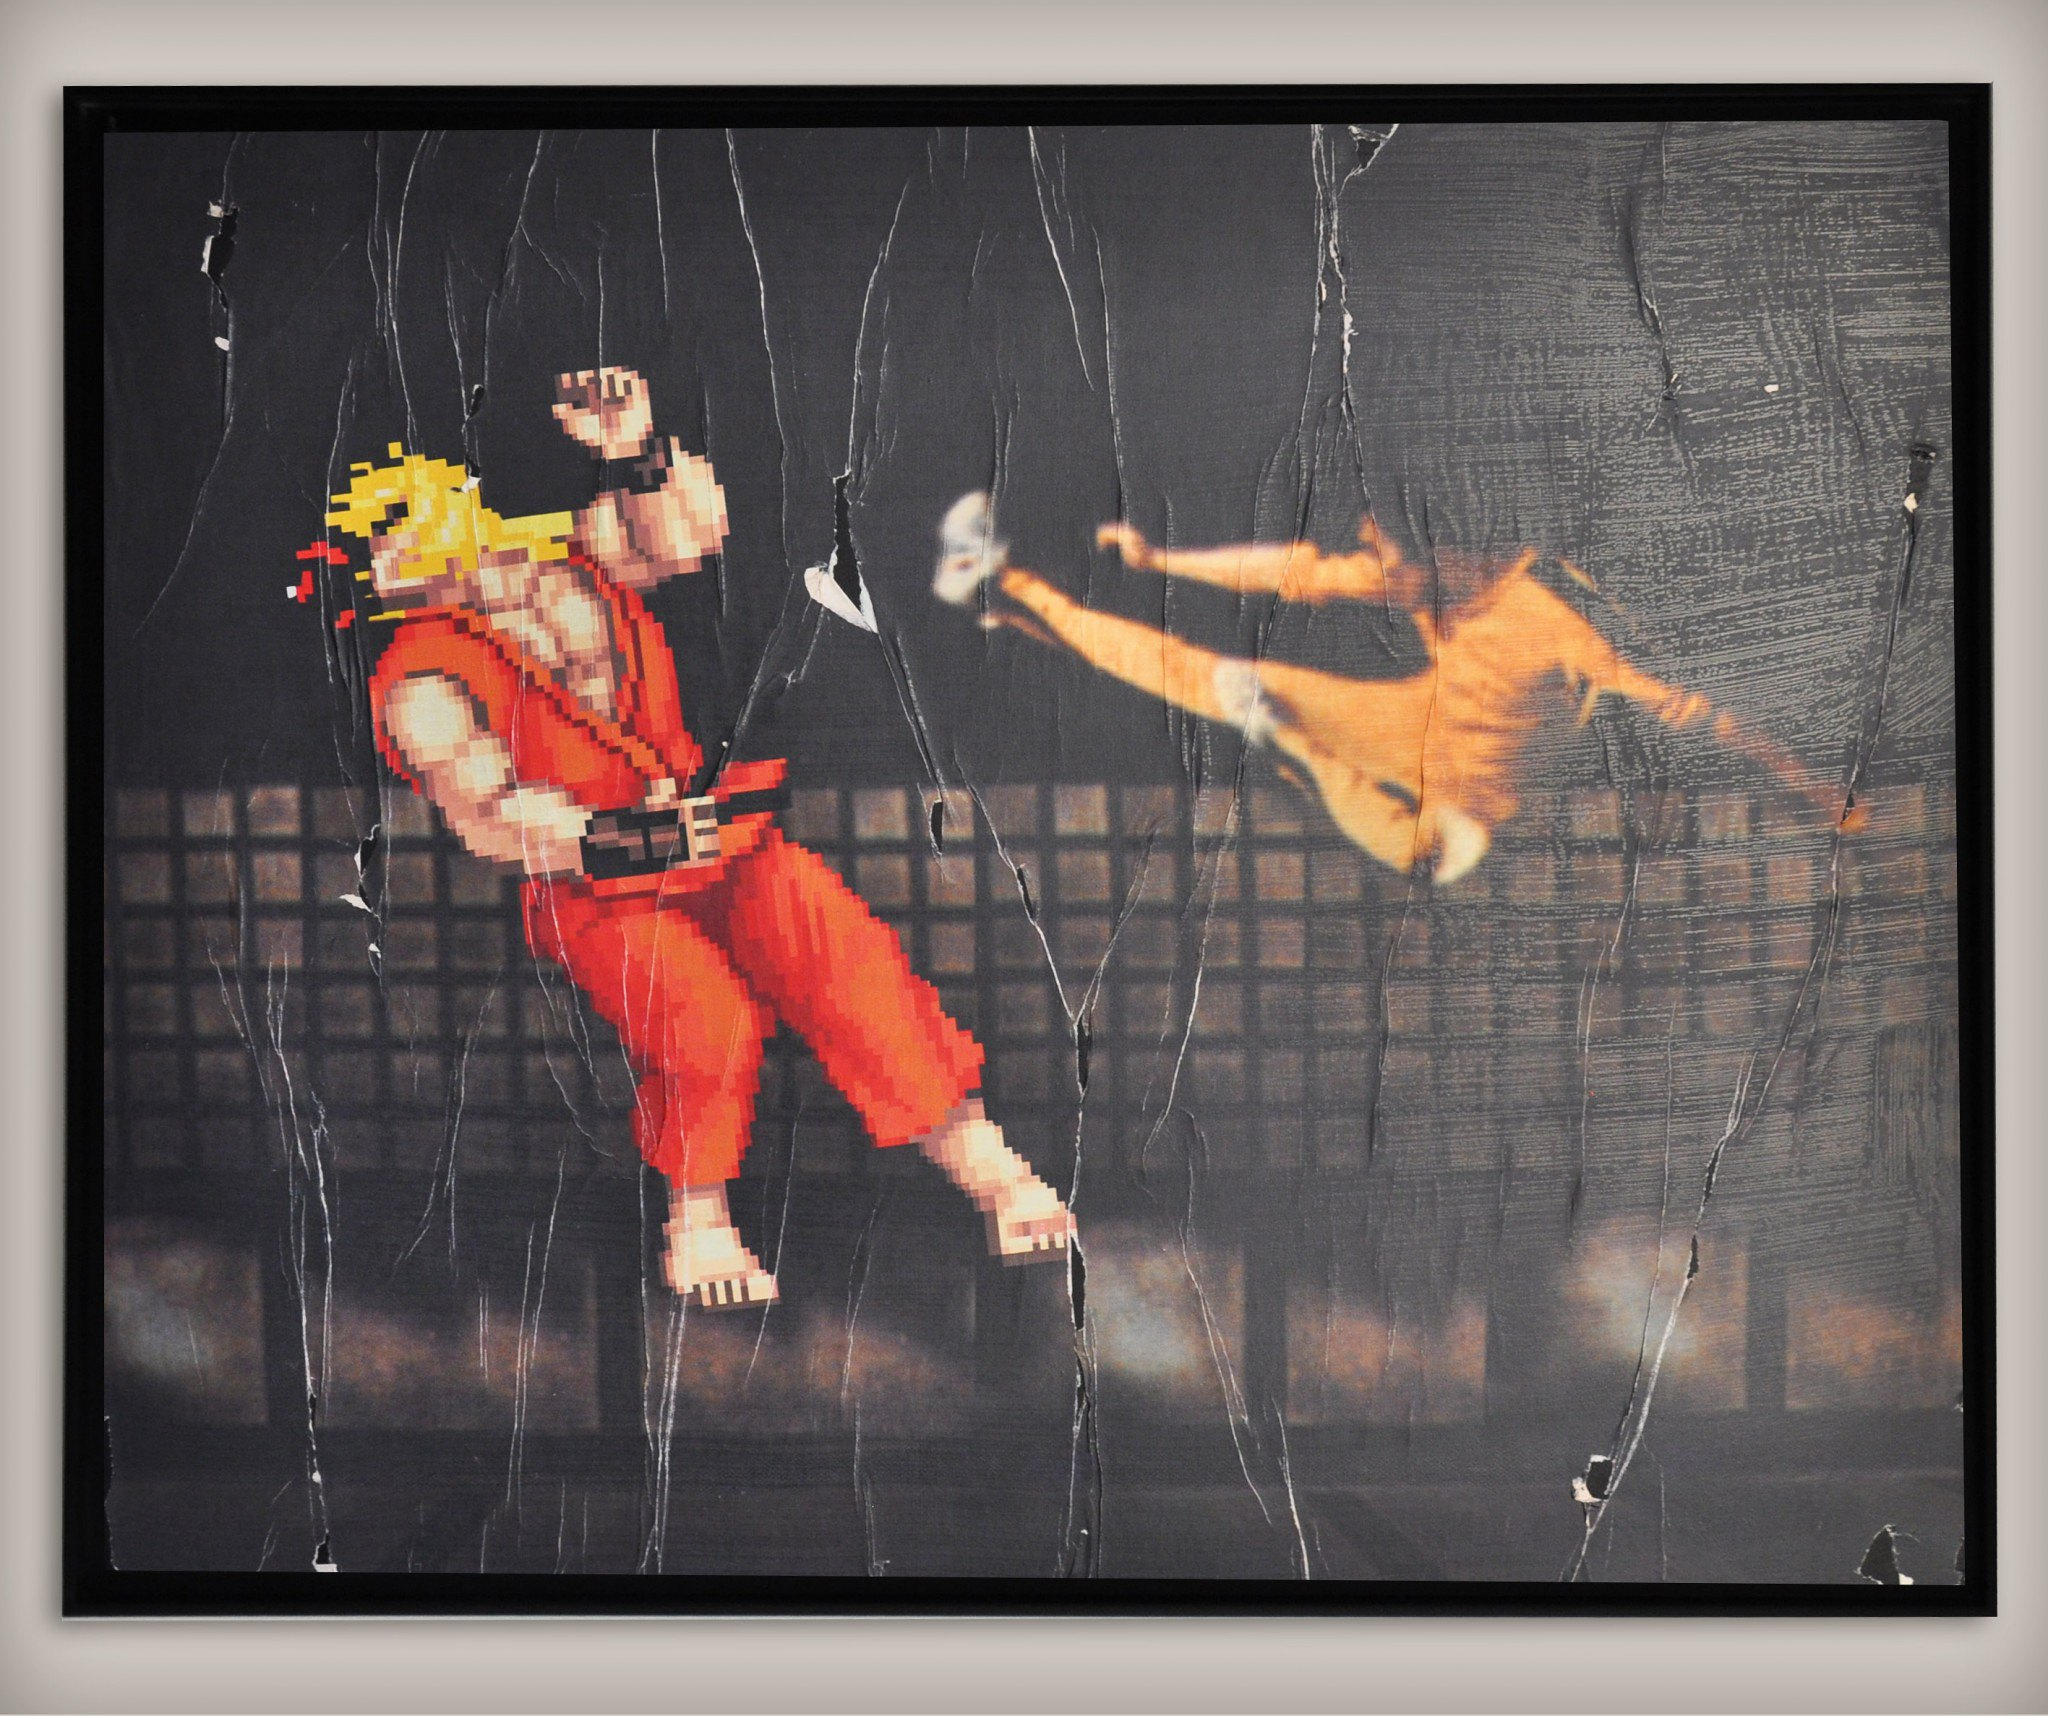 Street art by COMBO Culture Kidnapping - Street Fighter vs Bruce Lee